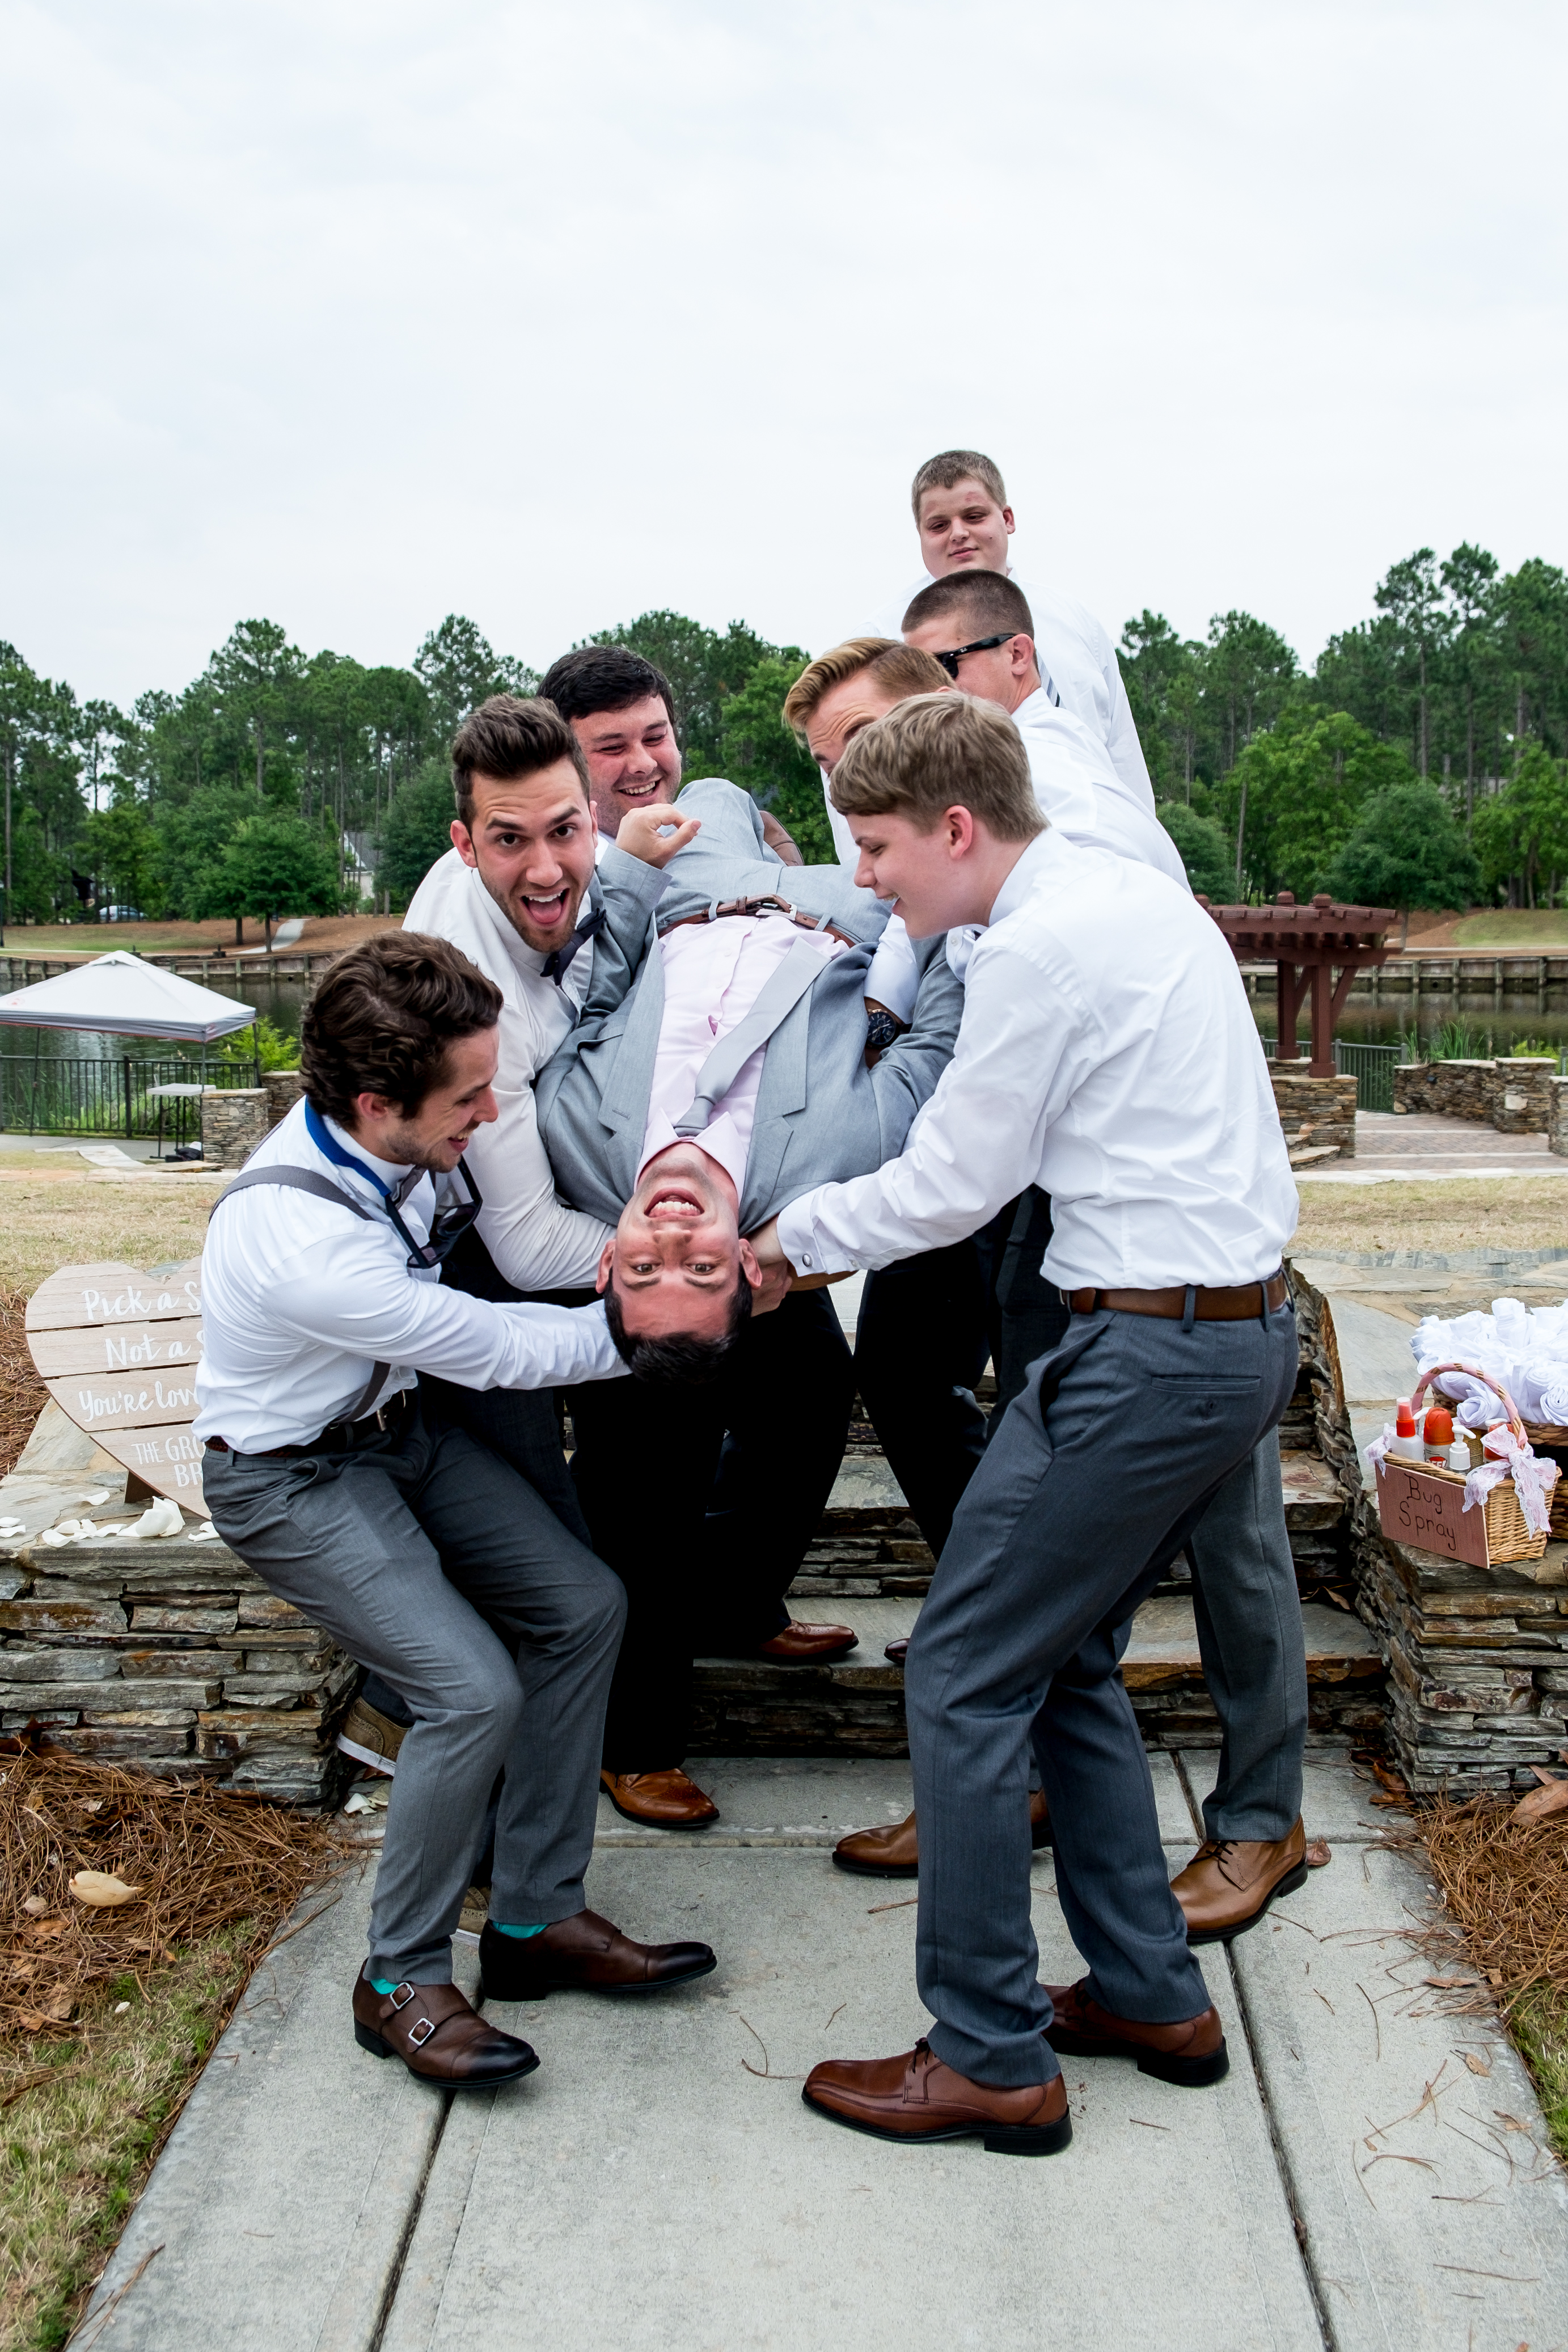 A groom on his back, being held by his groomsmen, before his wedding. Photo taken by Pait Photography, at a wedding at St. James Plantation, in St. James, NC.